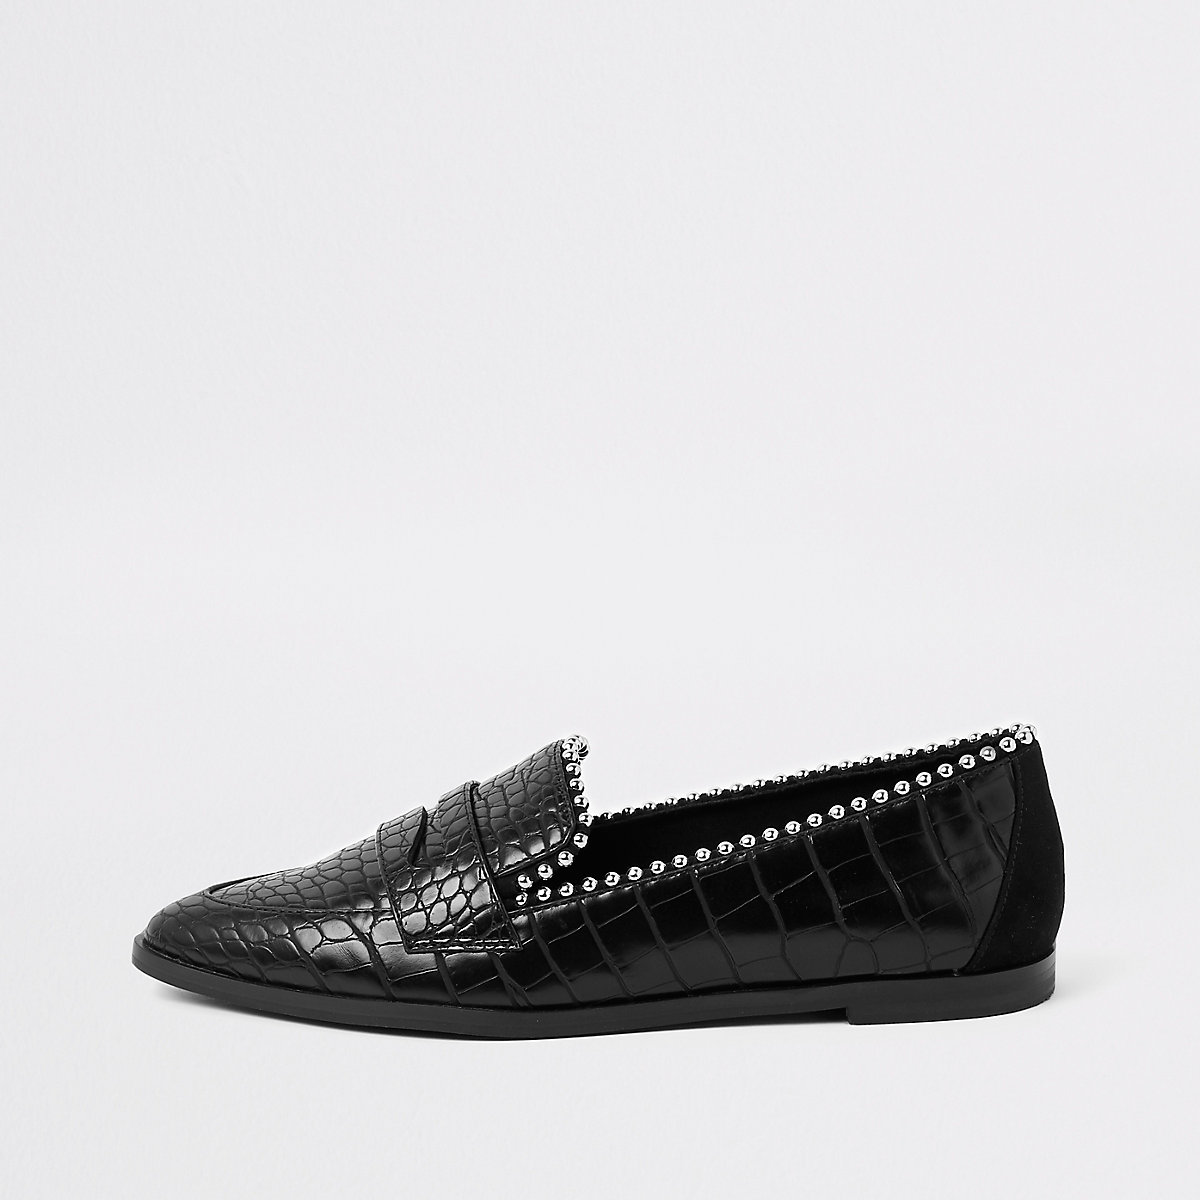 Black croc embossed stud embellished loafers